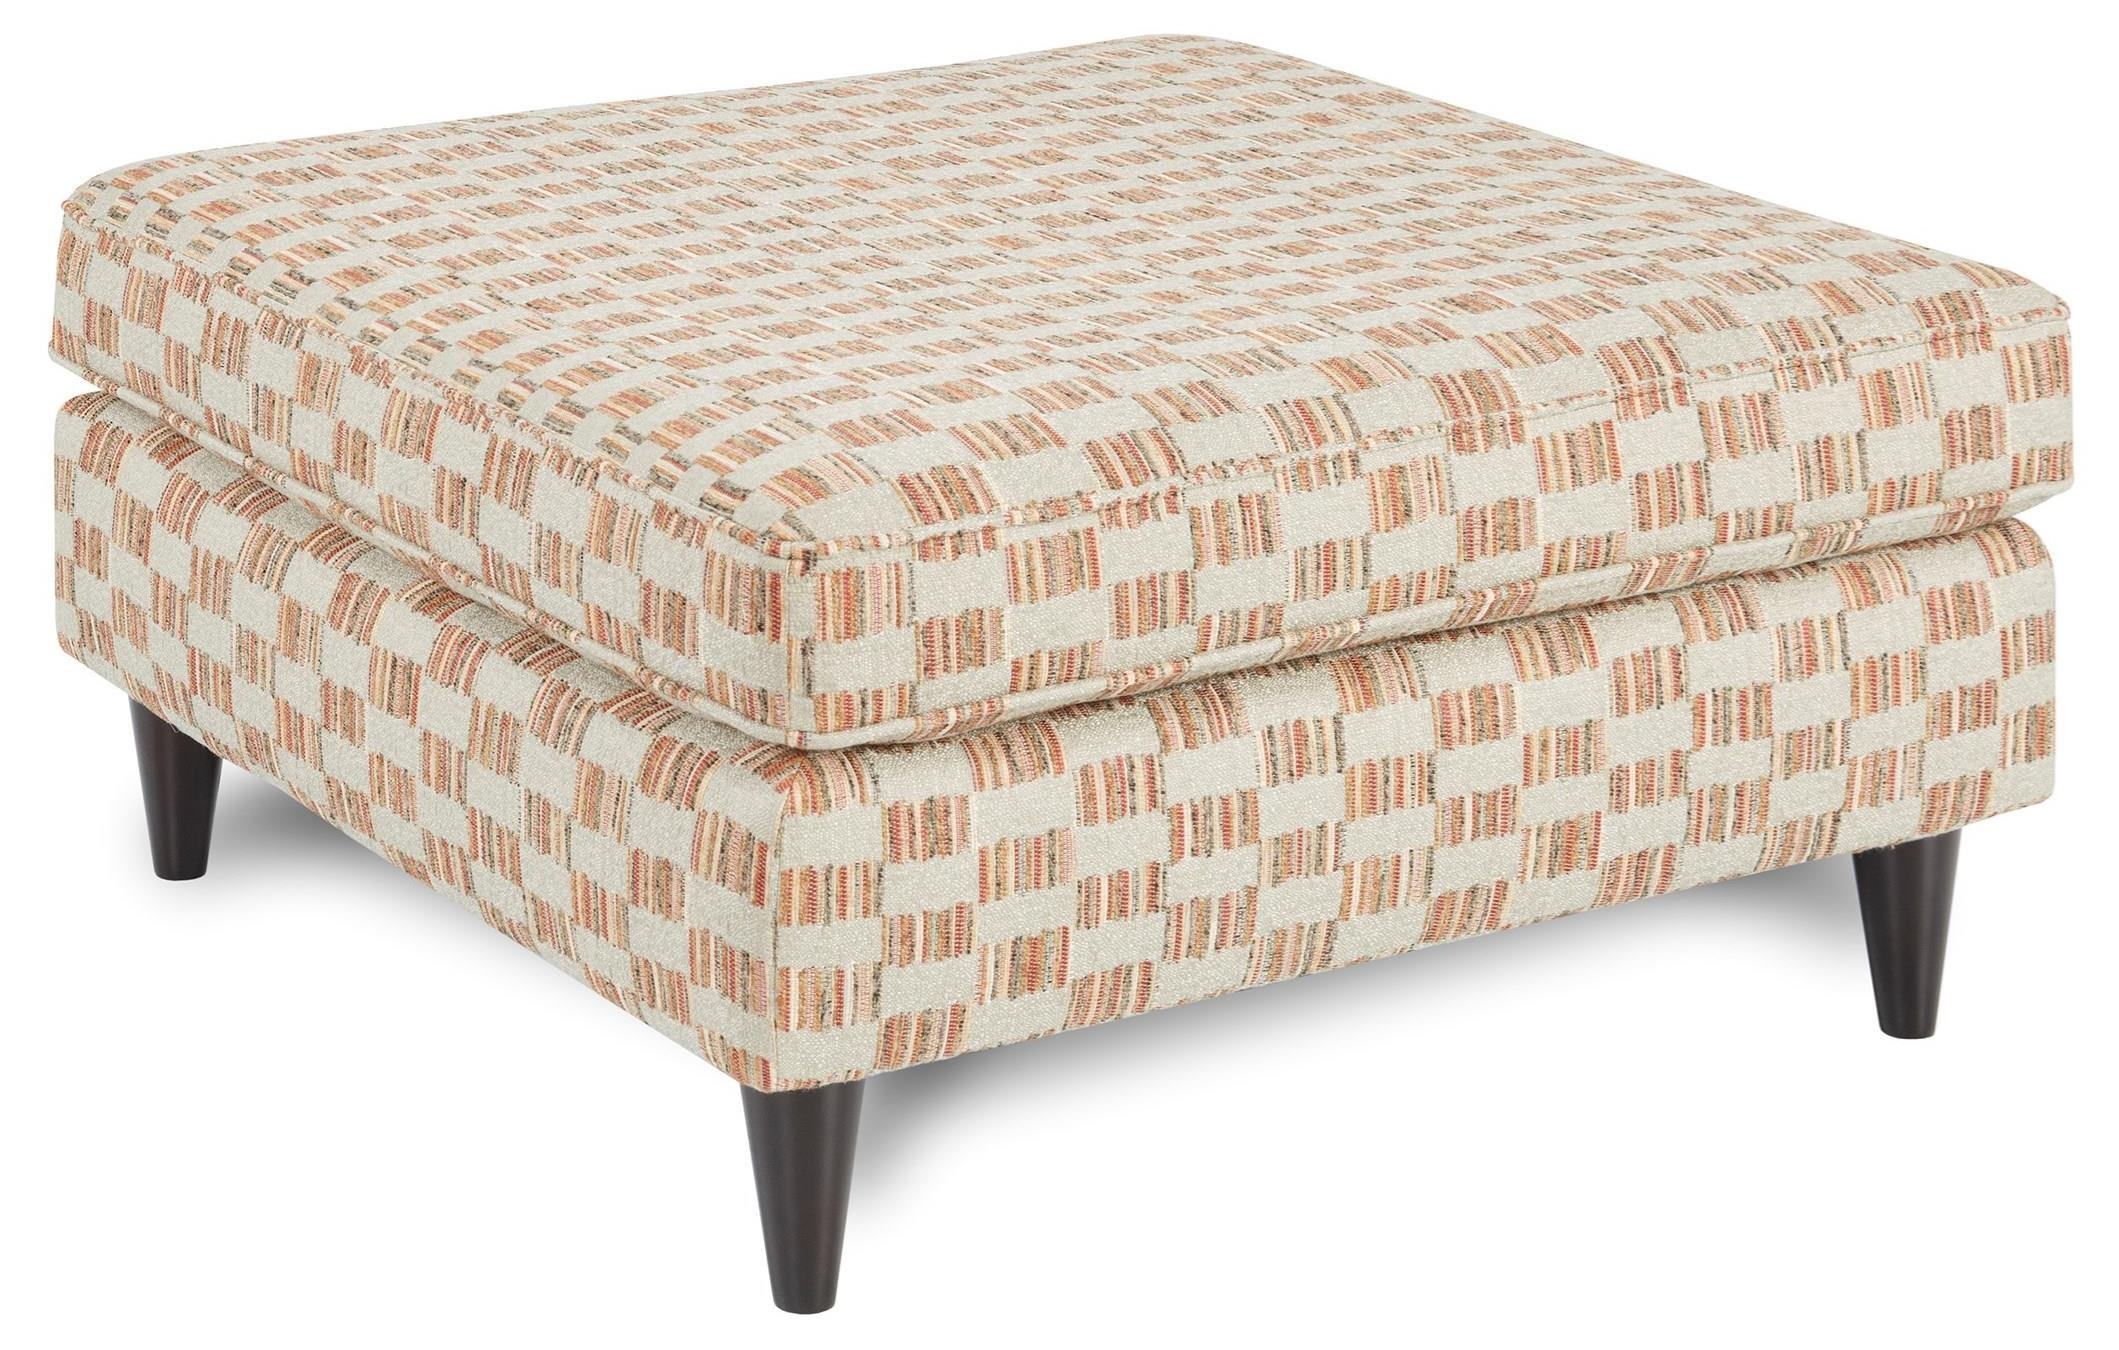 170 Ottoman by Fusion Furniture at Prime Brothers Furniture